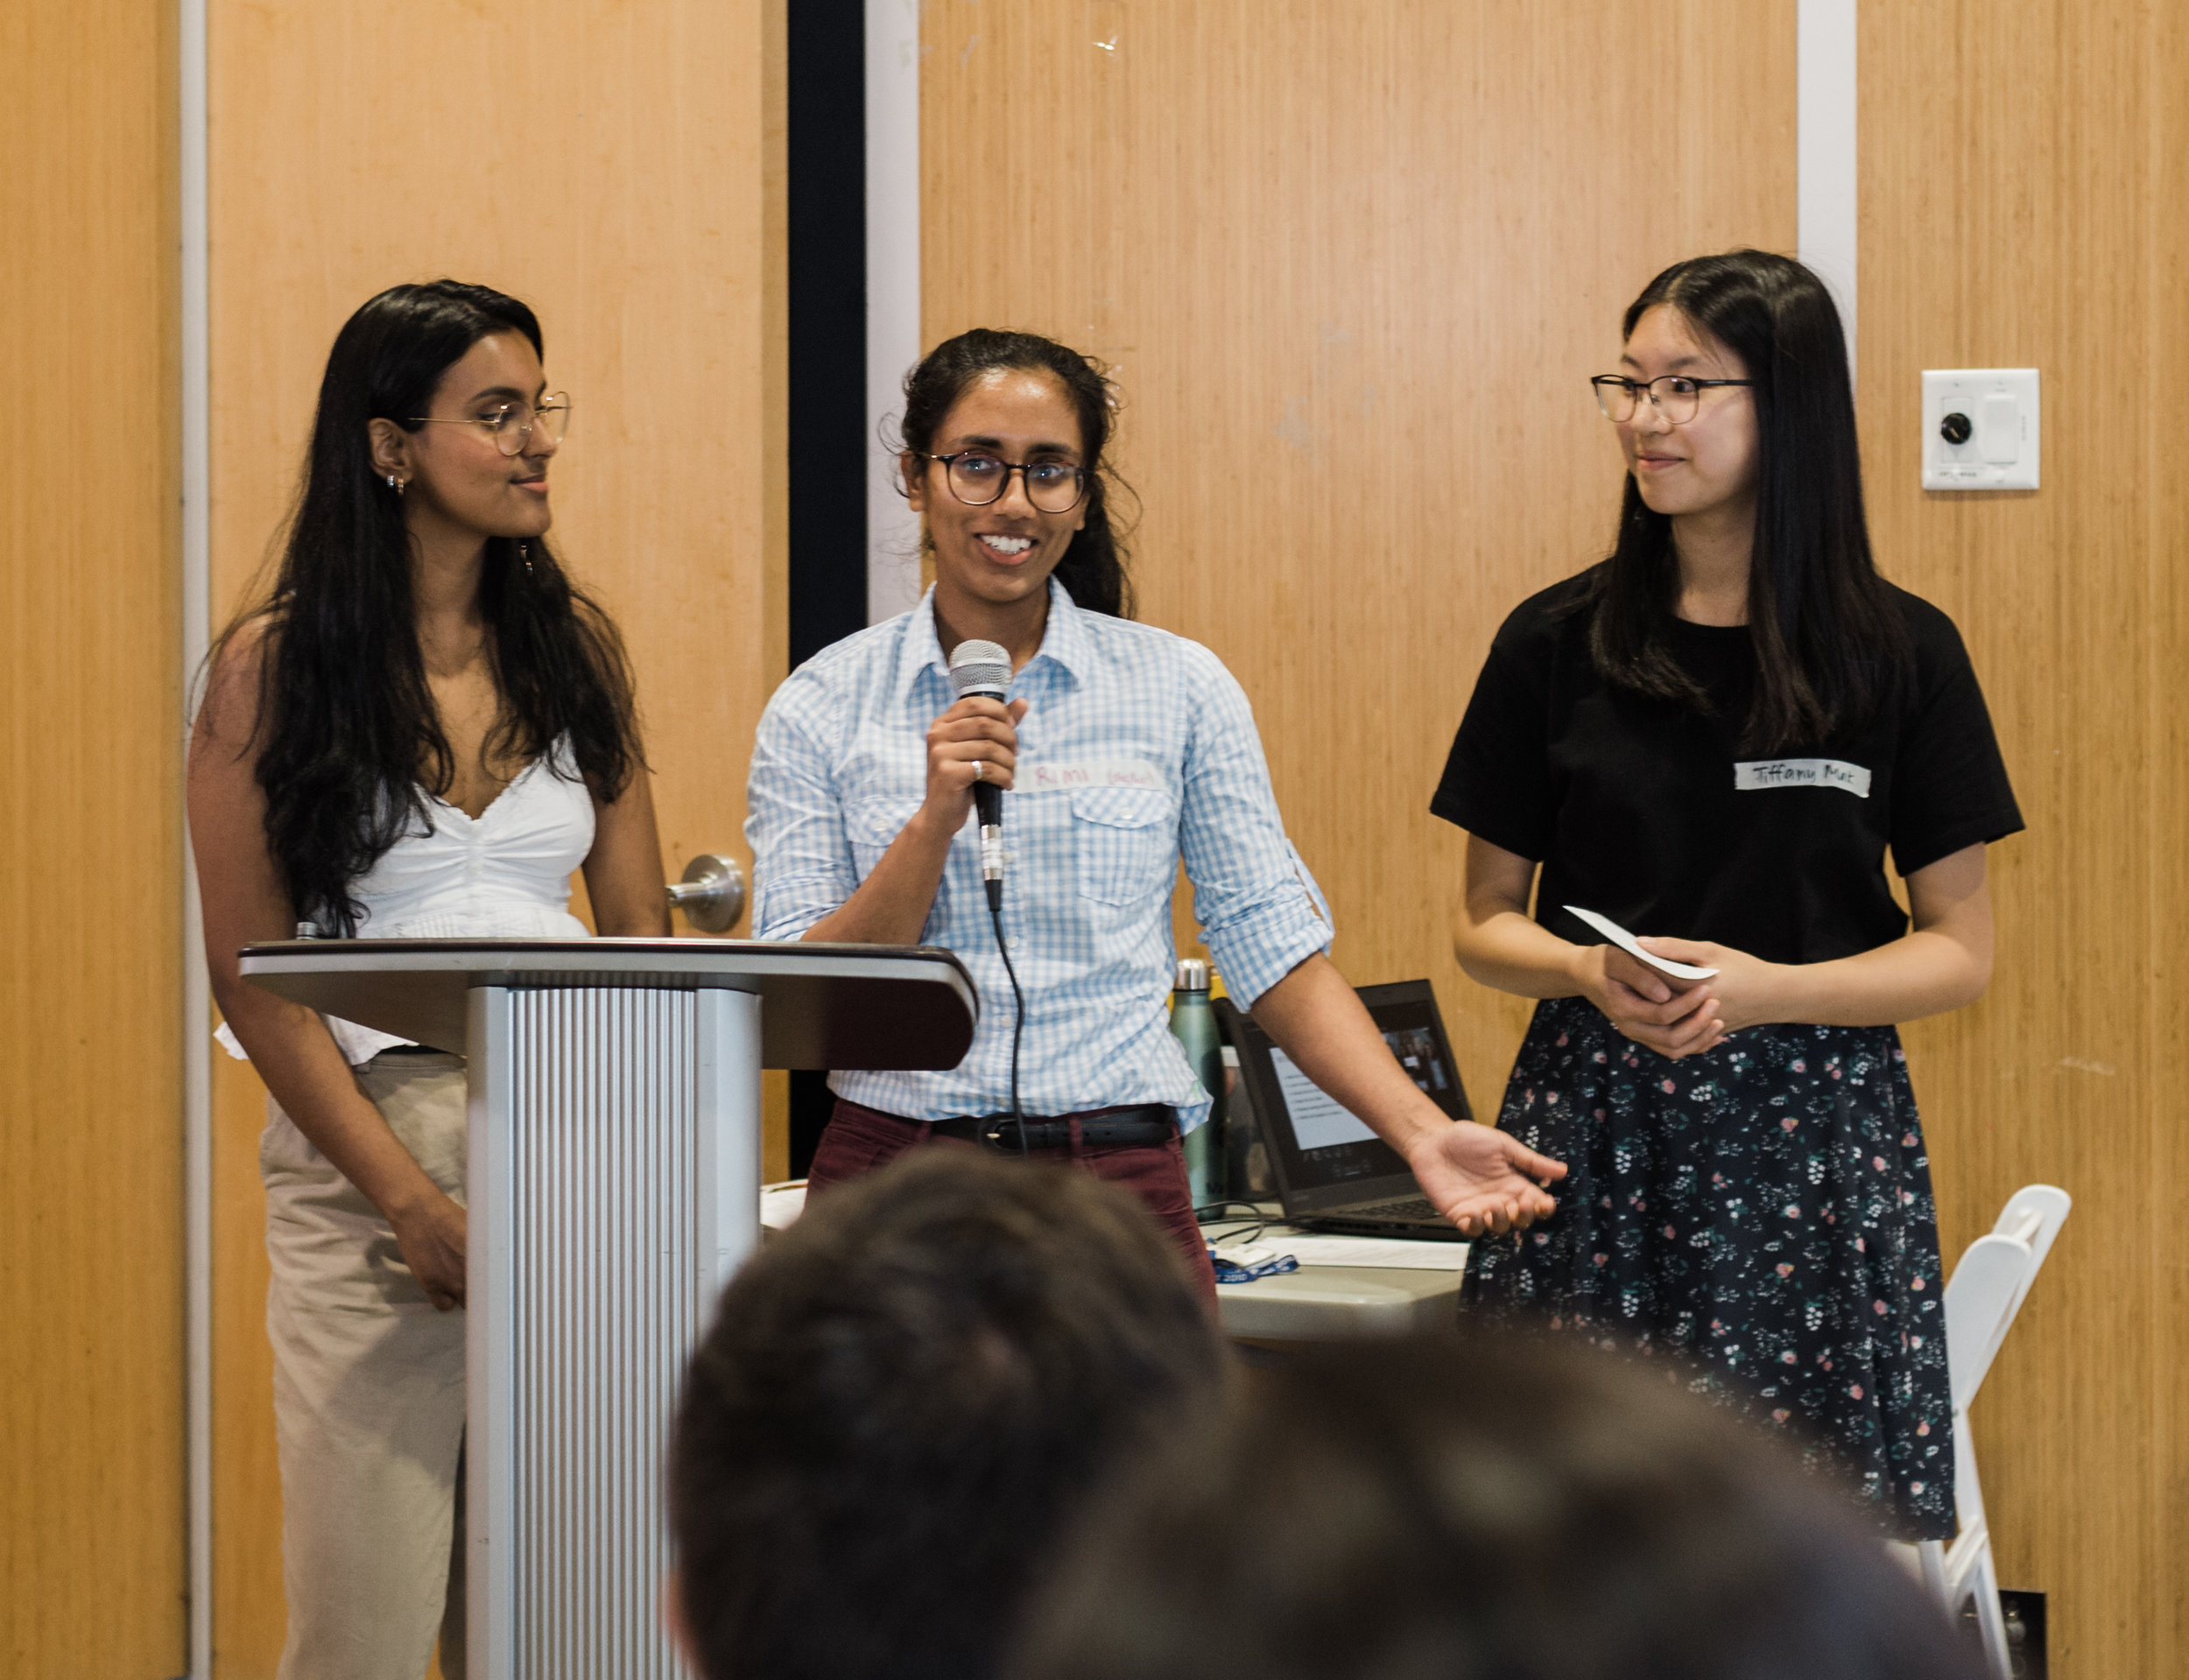 Rimi Plaha (centre) presenting with the Nature Team their climate action project.